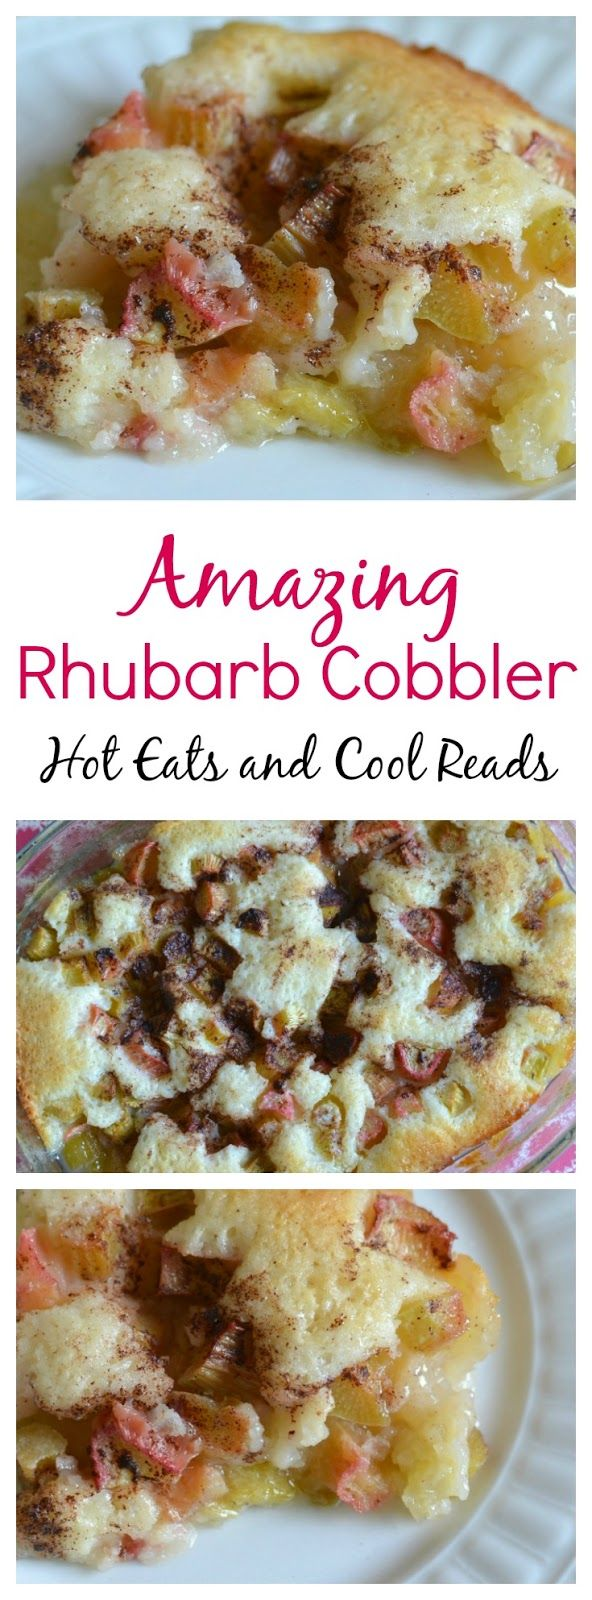 This lovely springtime dessert couldn't be any easier! Ready in less than an hour and so good with the sweet and tangy flavors! Serve with whipped cream or ice cream on top for an extra treat! Amazing Rhubarb Cobbler Recipe from Hot Eats and Cool Reads